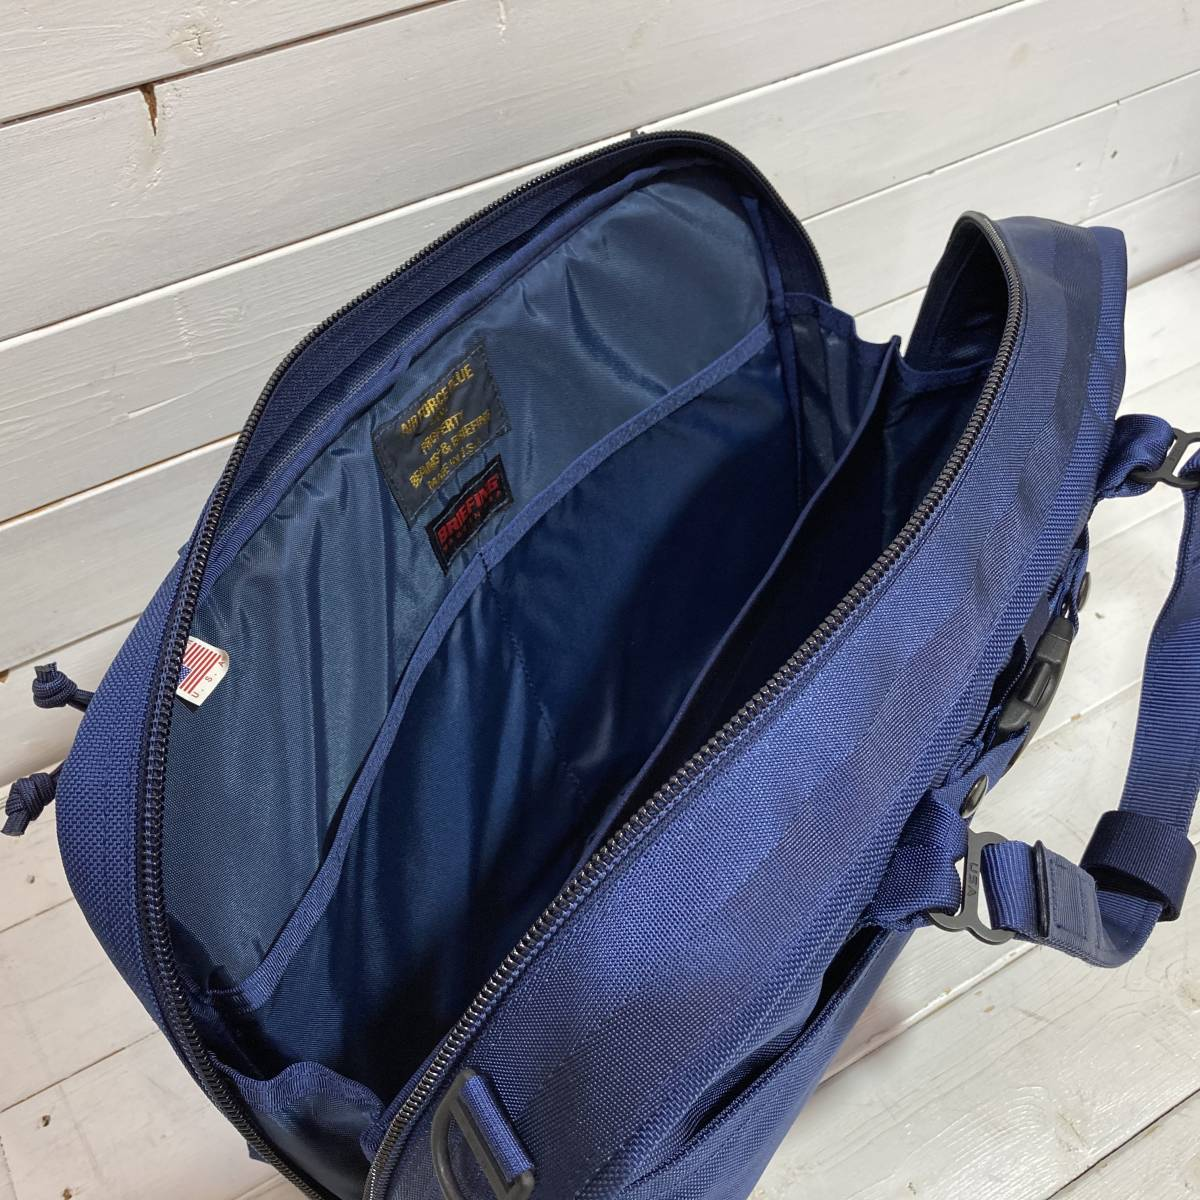 BRIEFING × BEAMS PLUS ブリーフィング × ビームス 別注 AIR FORCE BLUE LINE NEO B4 LINER ショルダーバッグ ブリーフケース A2-2127_画像7